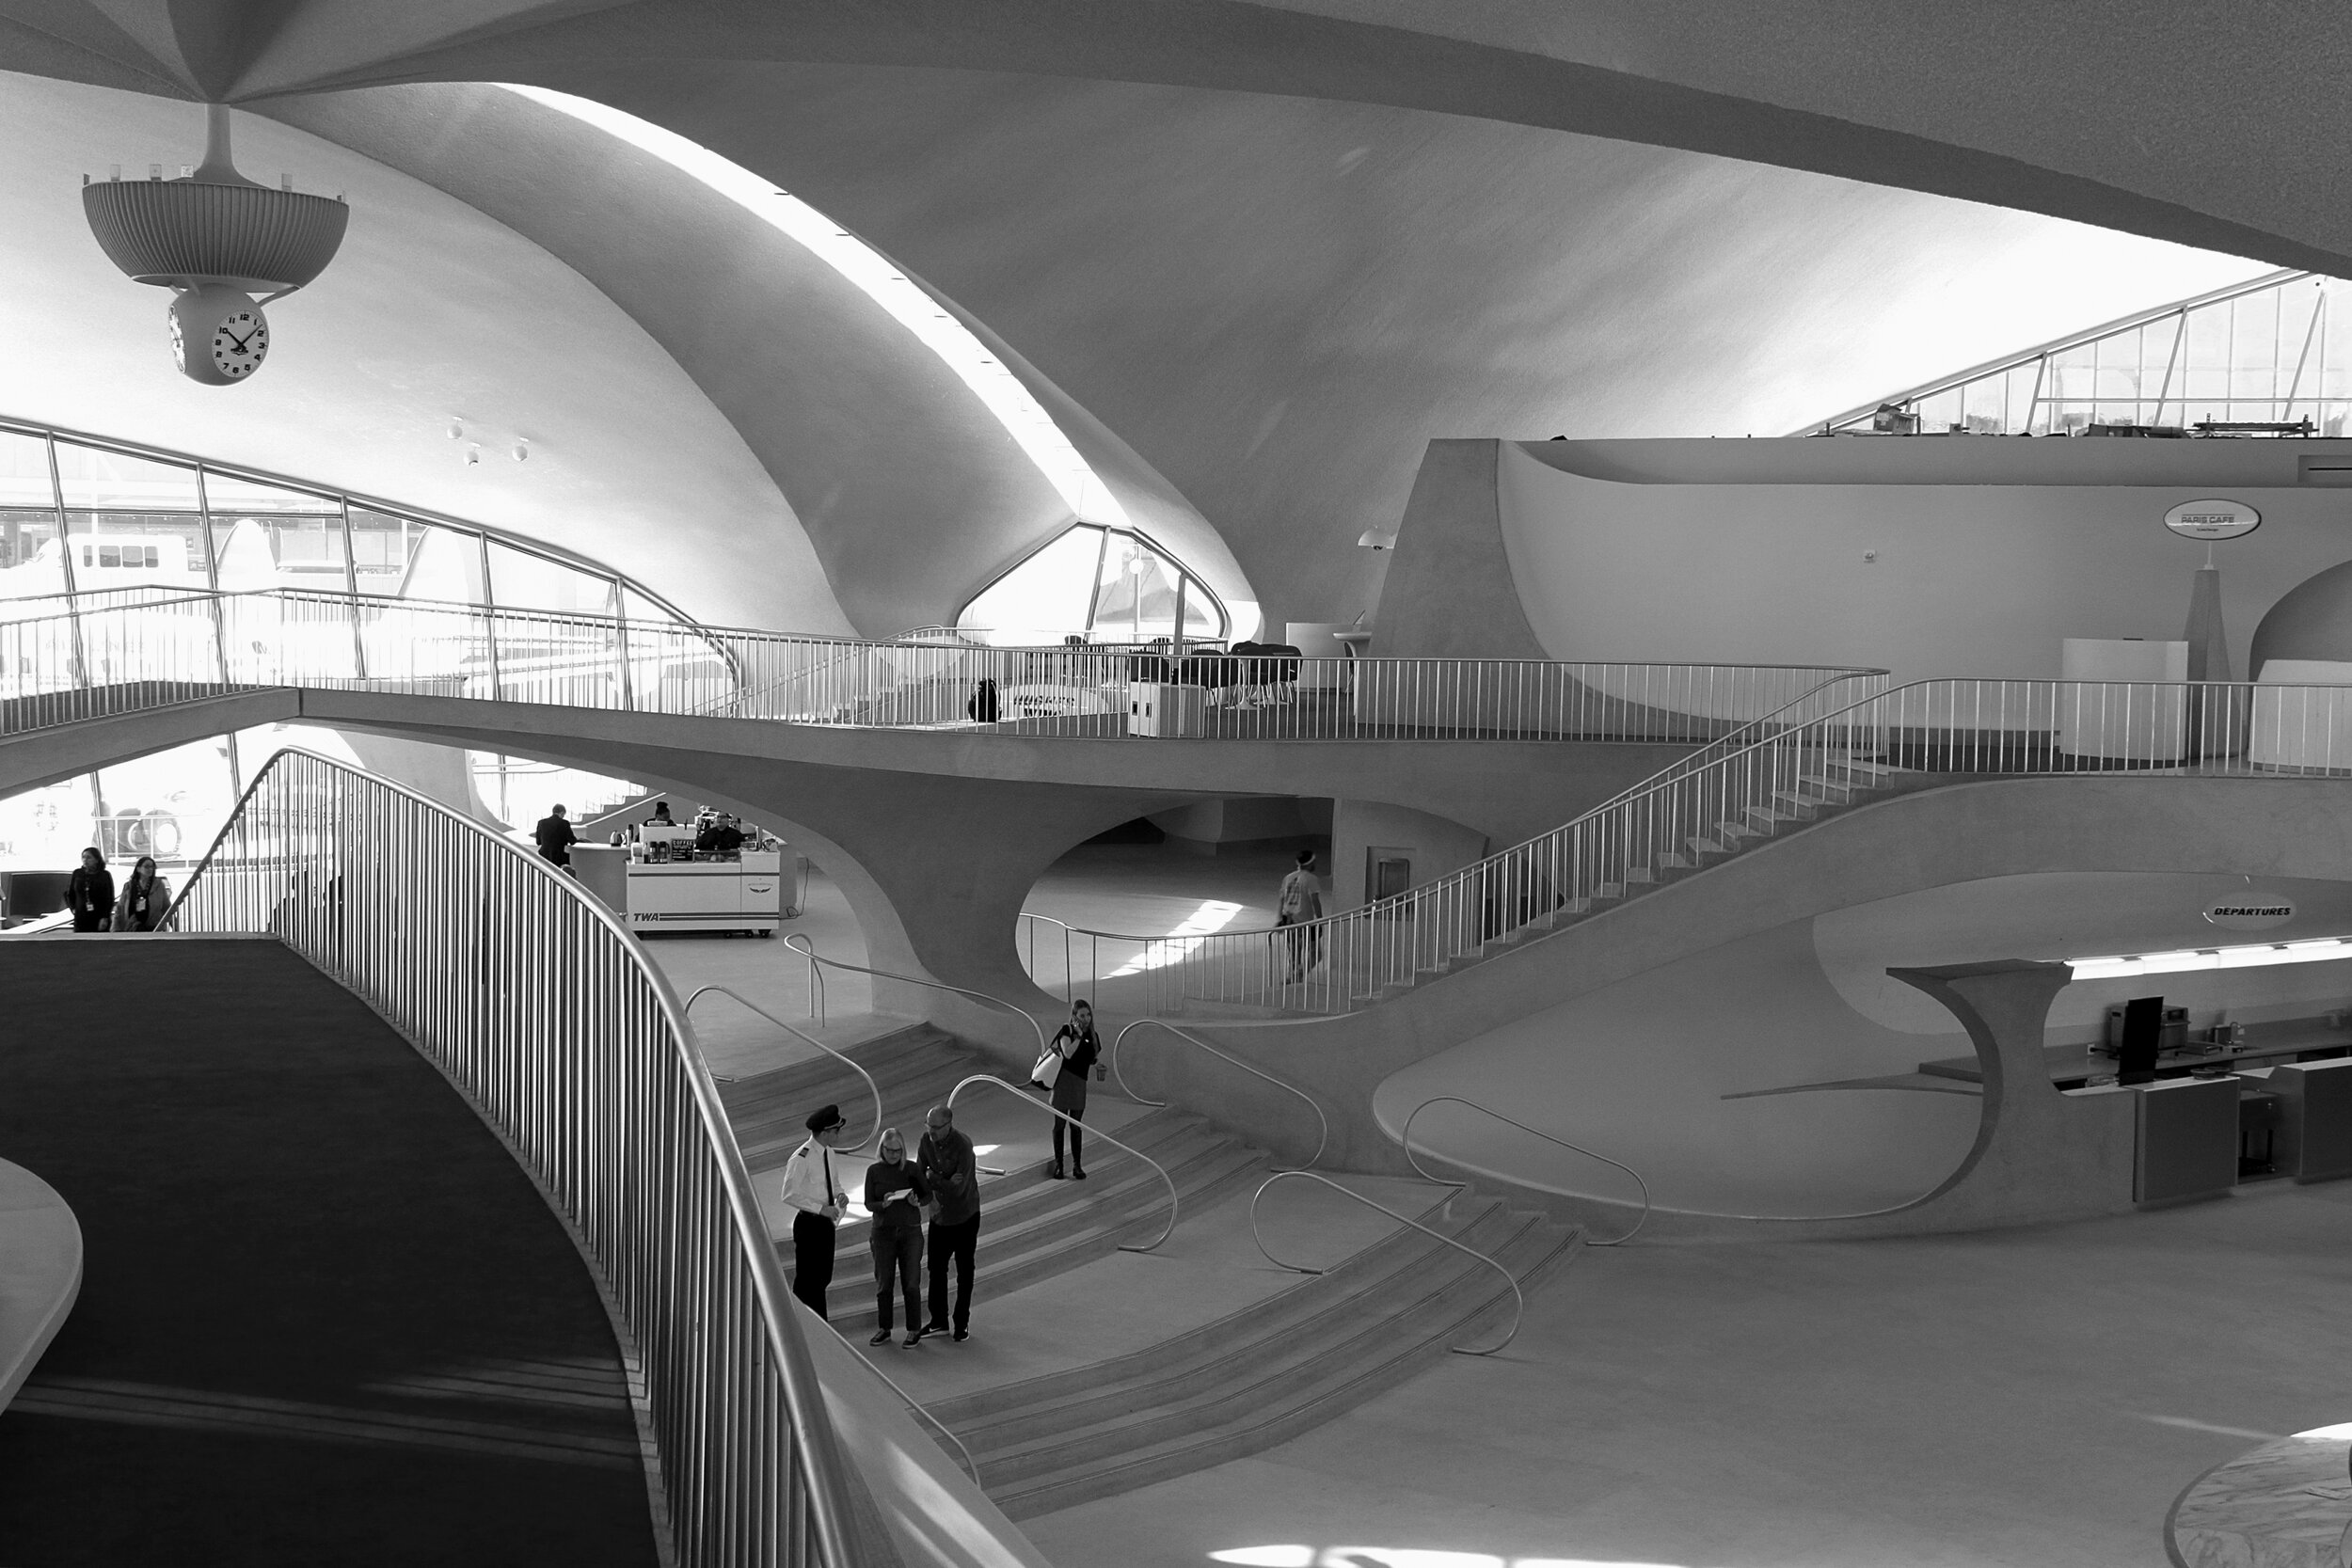 The TWA Hotel lobby is daylit by large windows and the glazed joints between the soaring vaults that give the building its iconic form. Photo: Patrick Templeton.